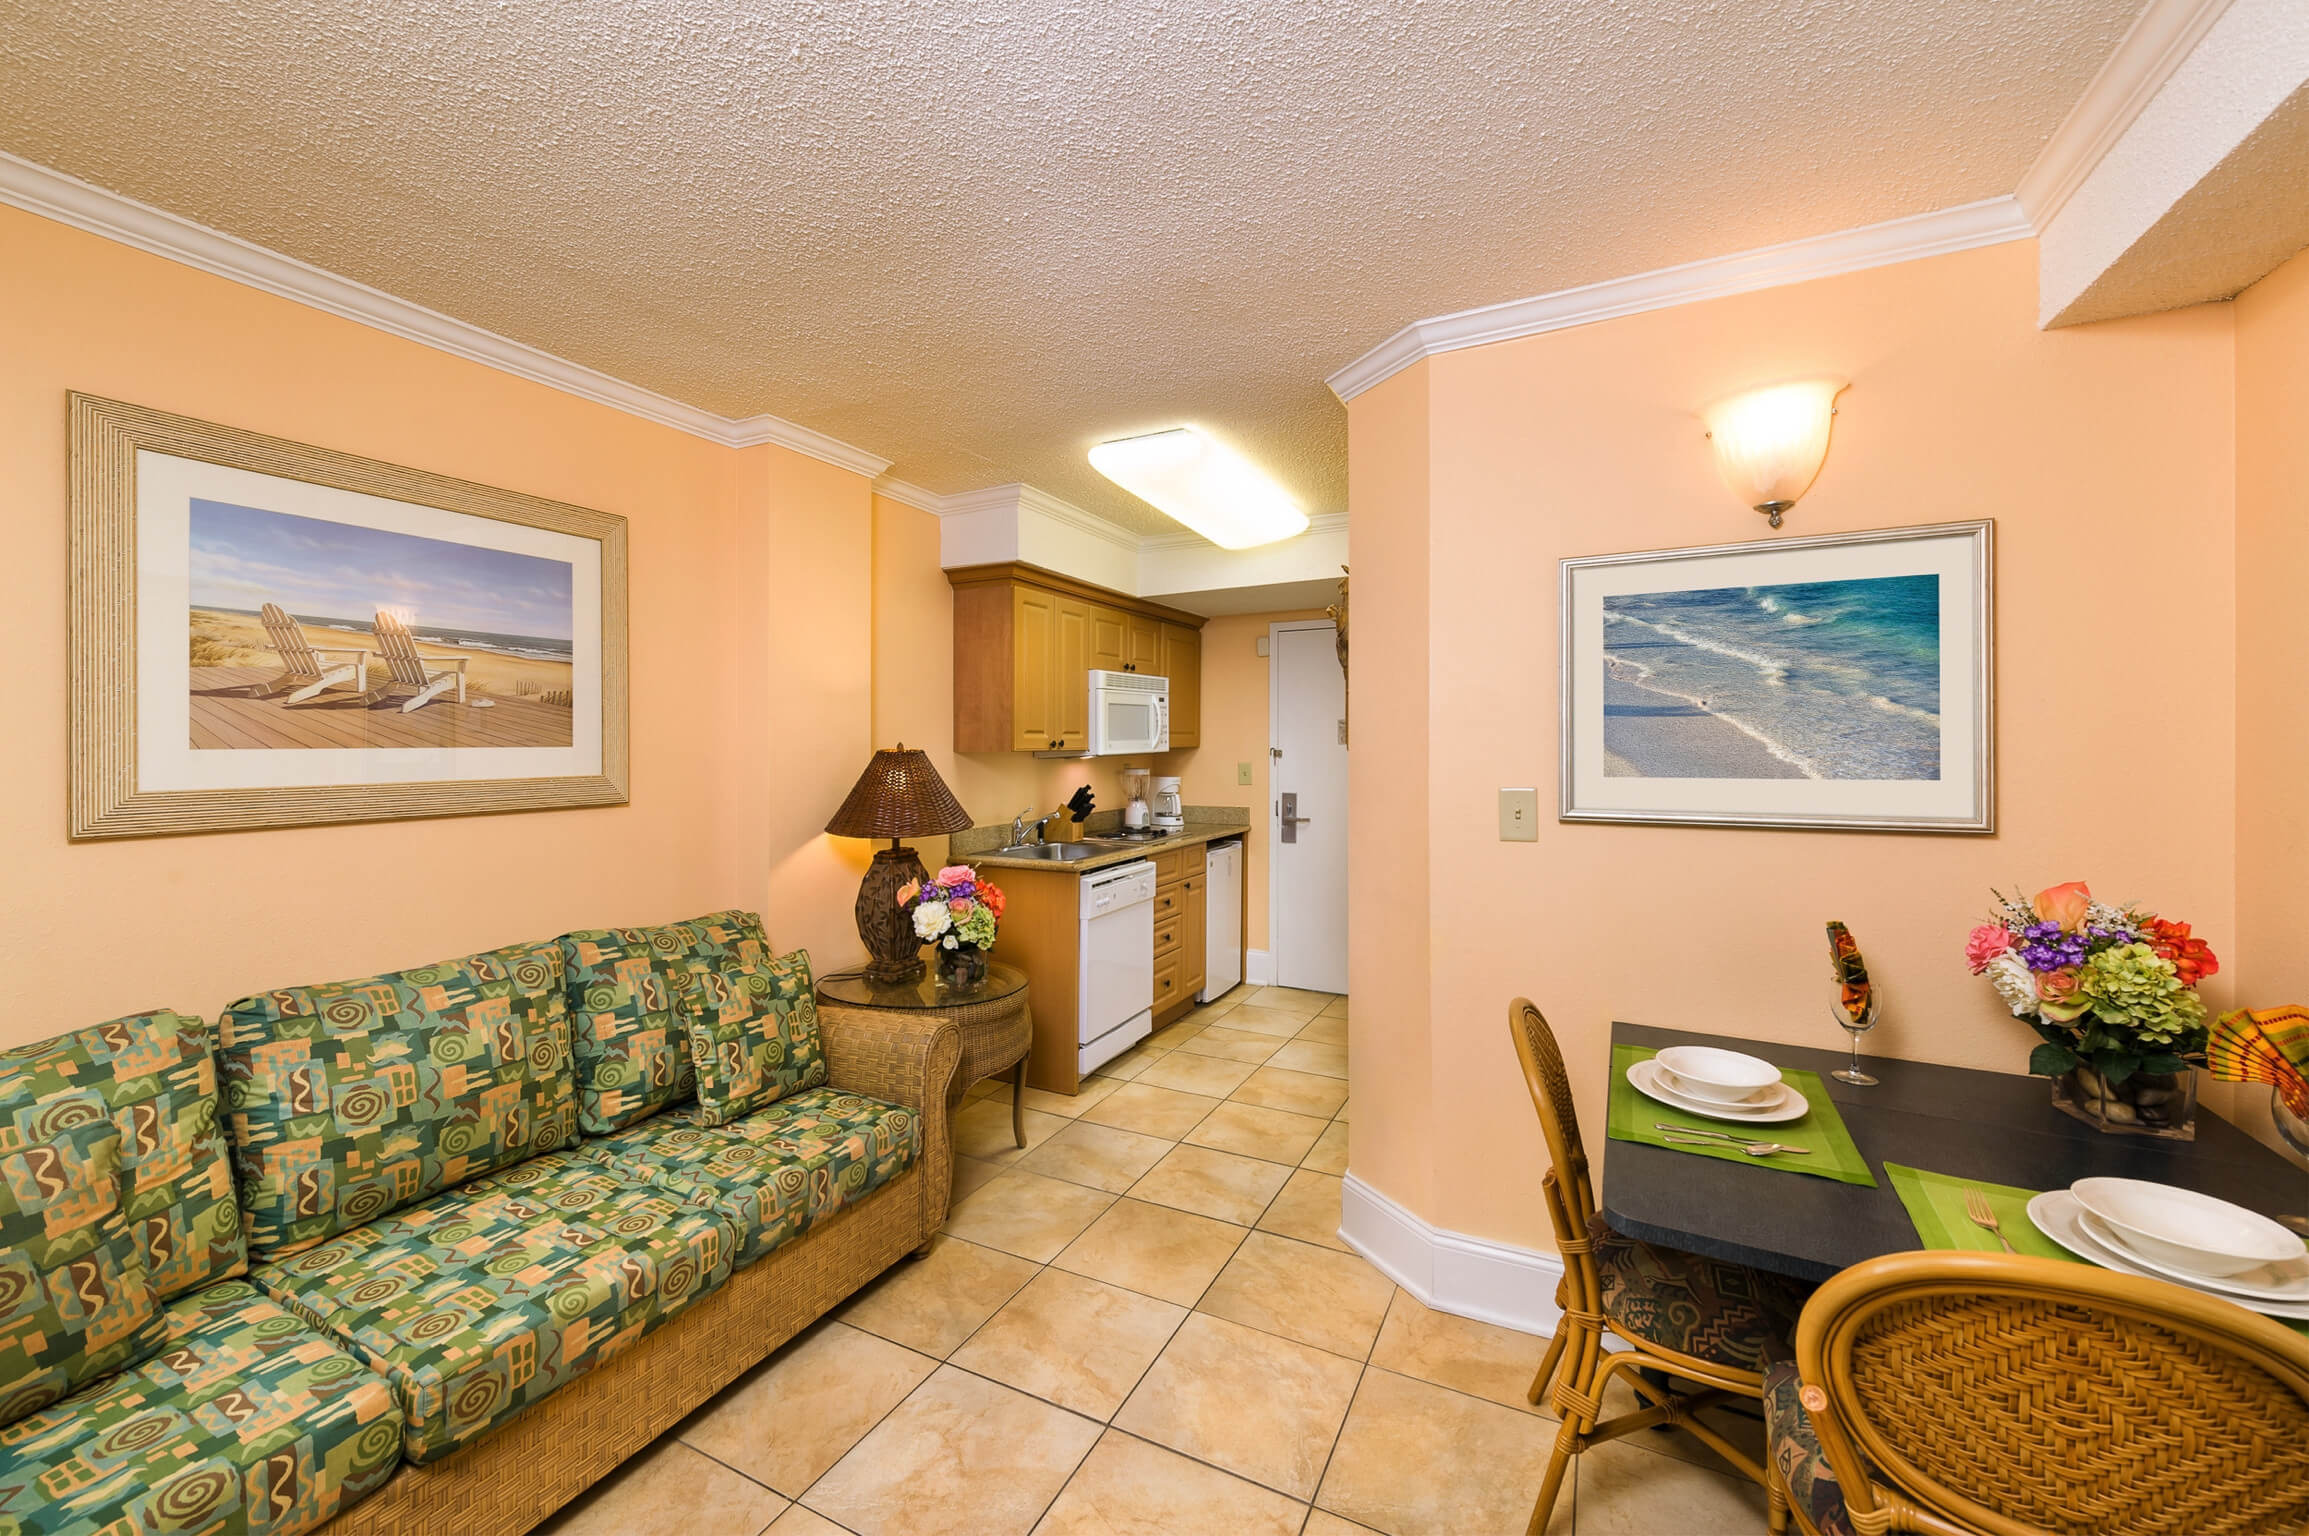 Myrtle beach oceanfront hotels westgate myrtle beach villas - 4 bedroom resorts in myrtle beach sc ...